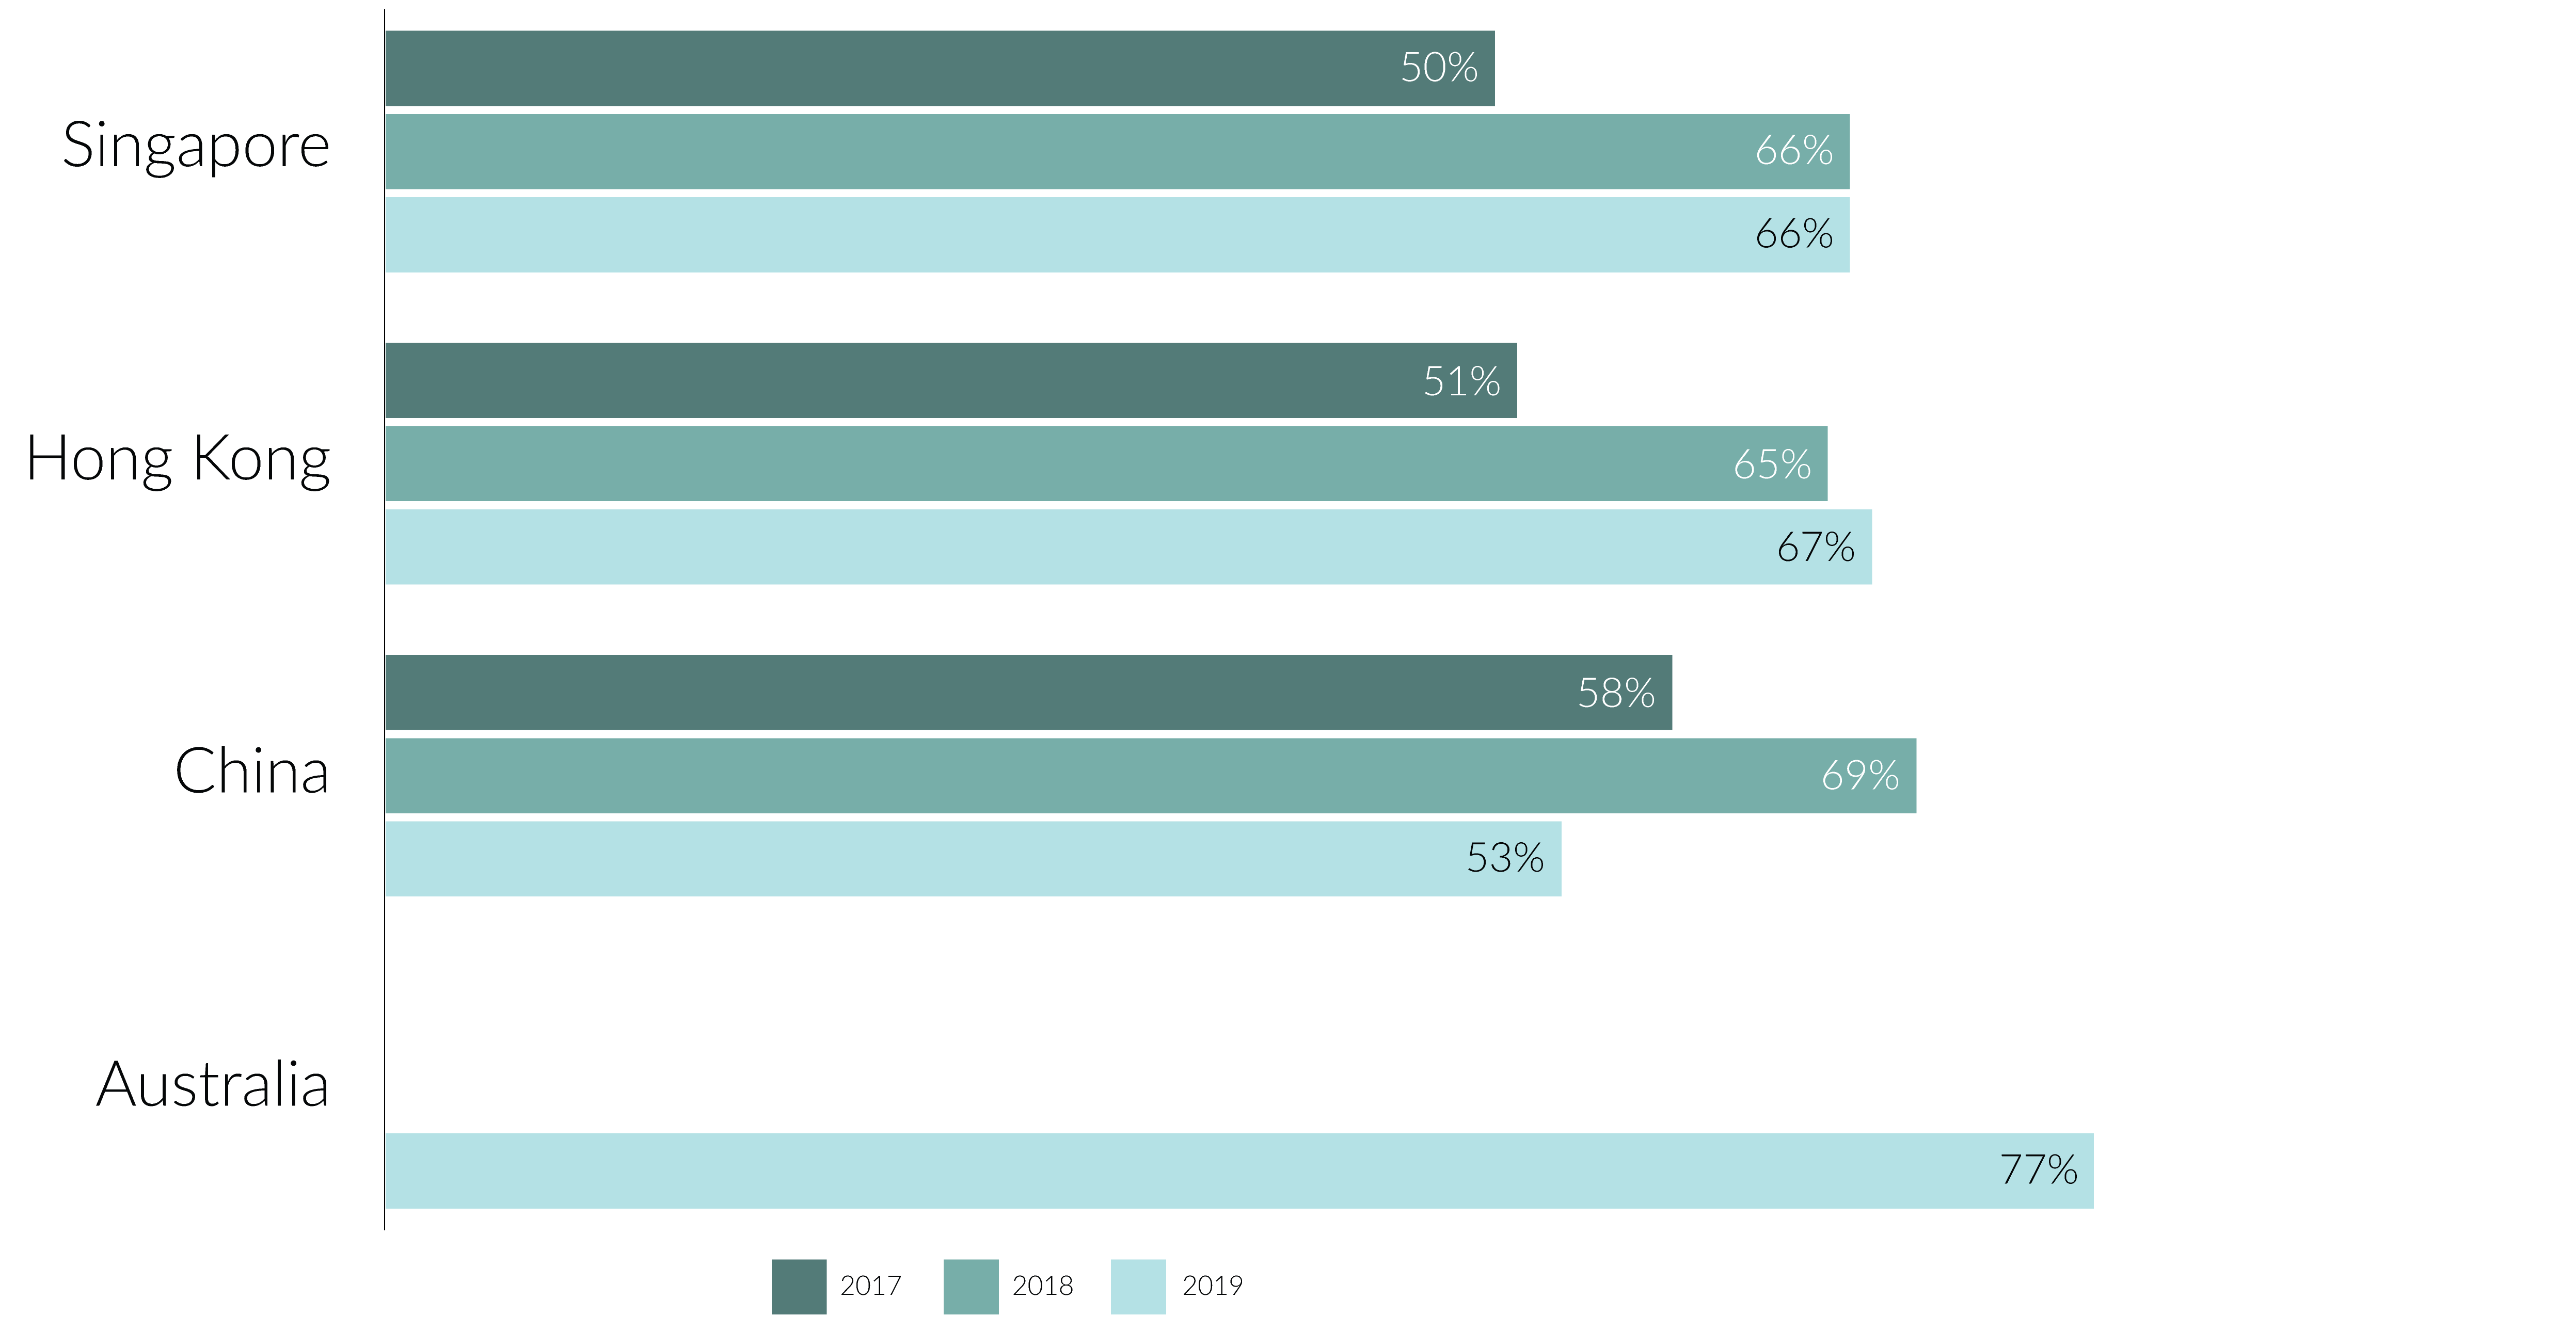 Infographic 2: Percentage of respondents who indicated 'agree' that organisations are more accepting of difference when it comes to talent acquisition and retention